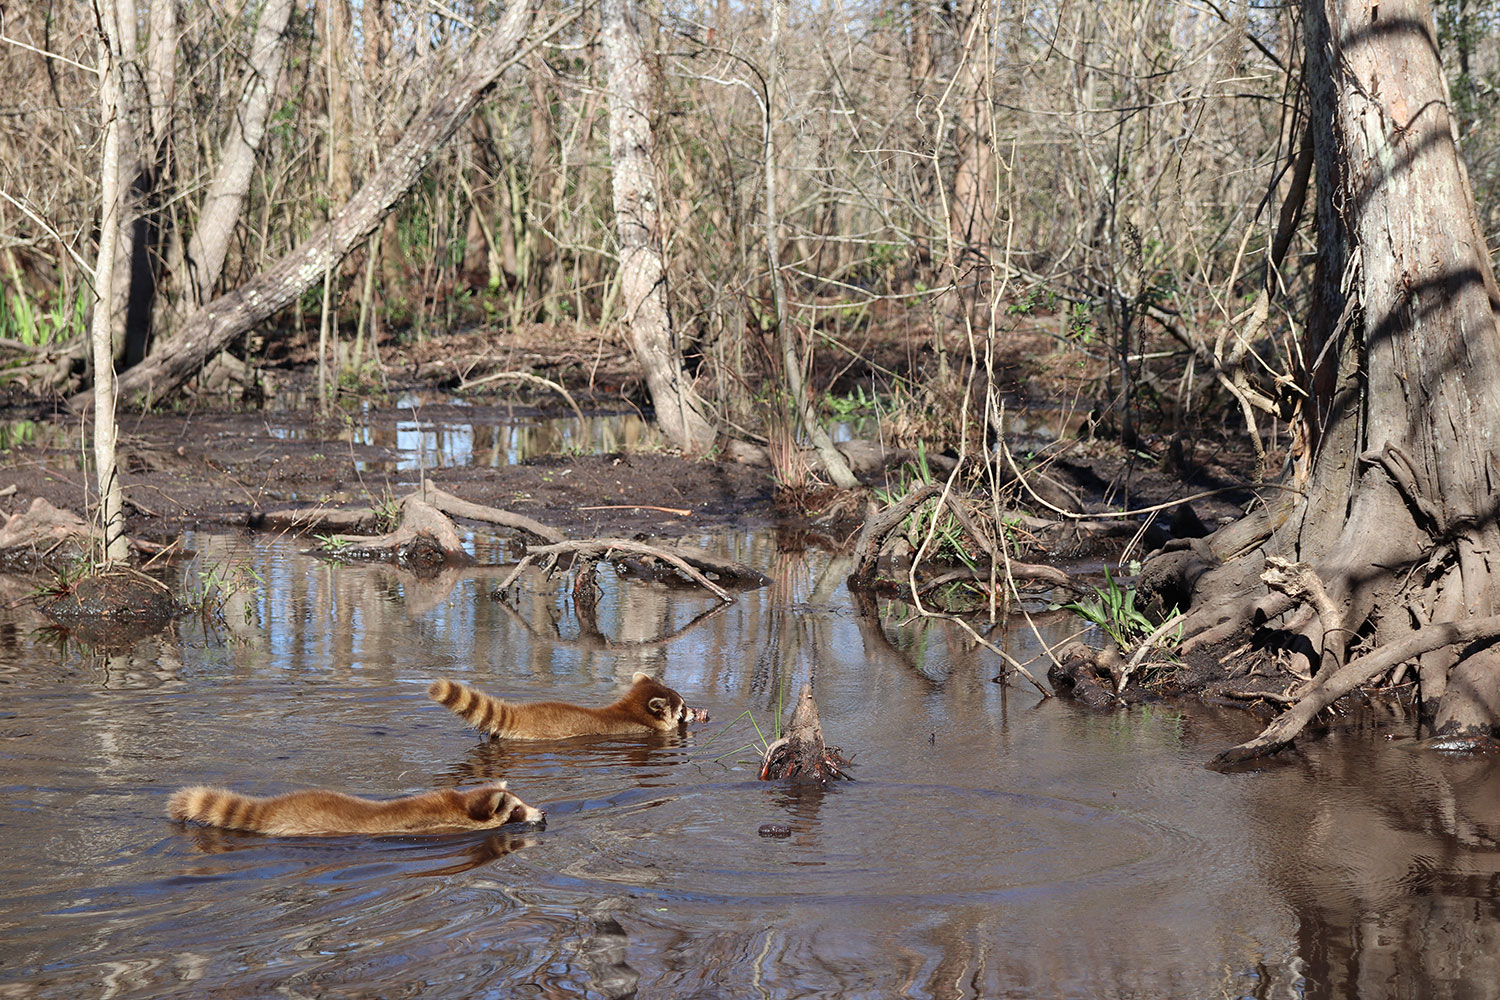 Raccoons in the Louisiana Swamp